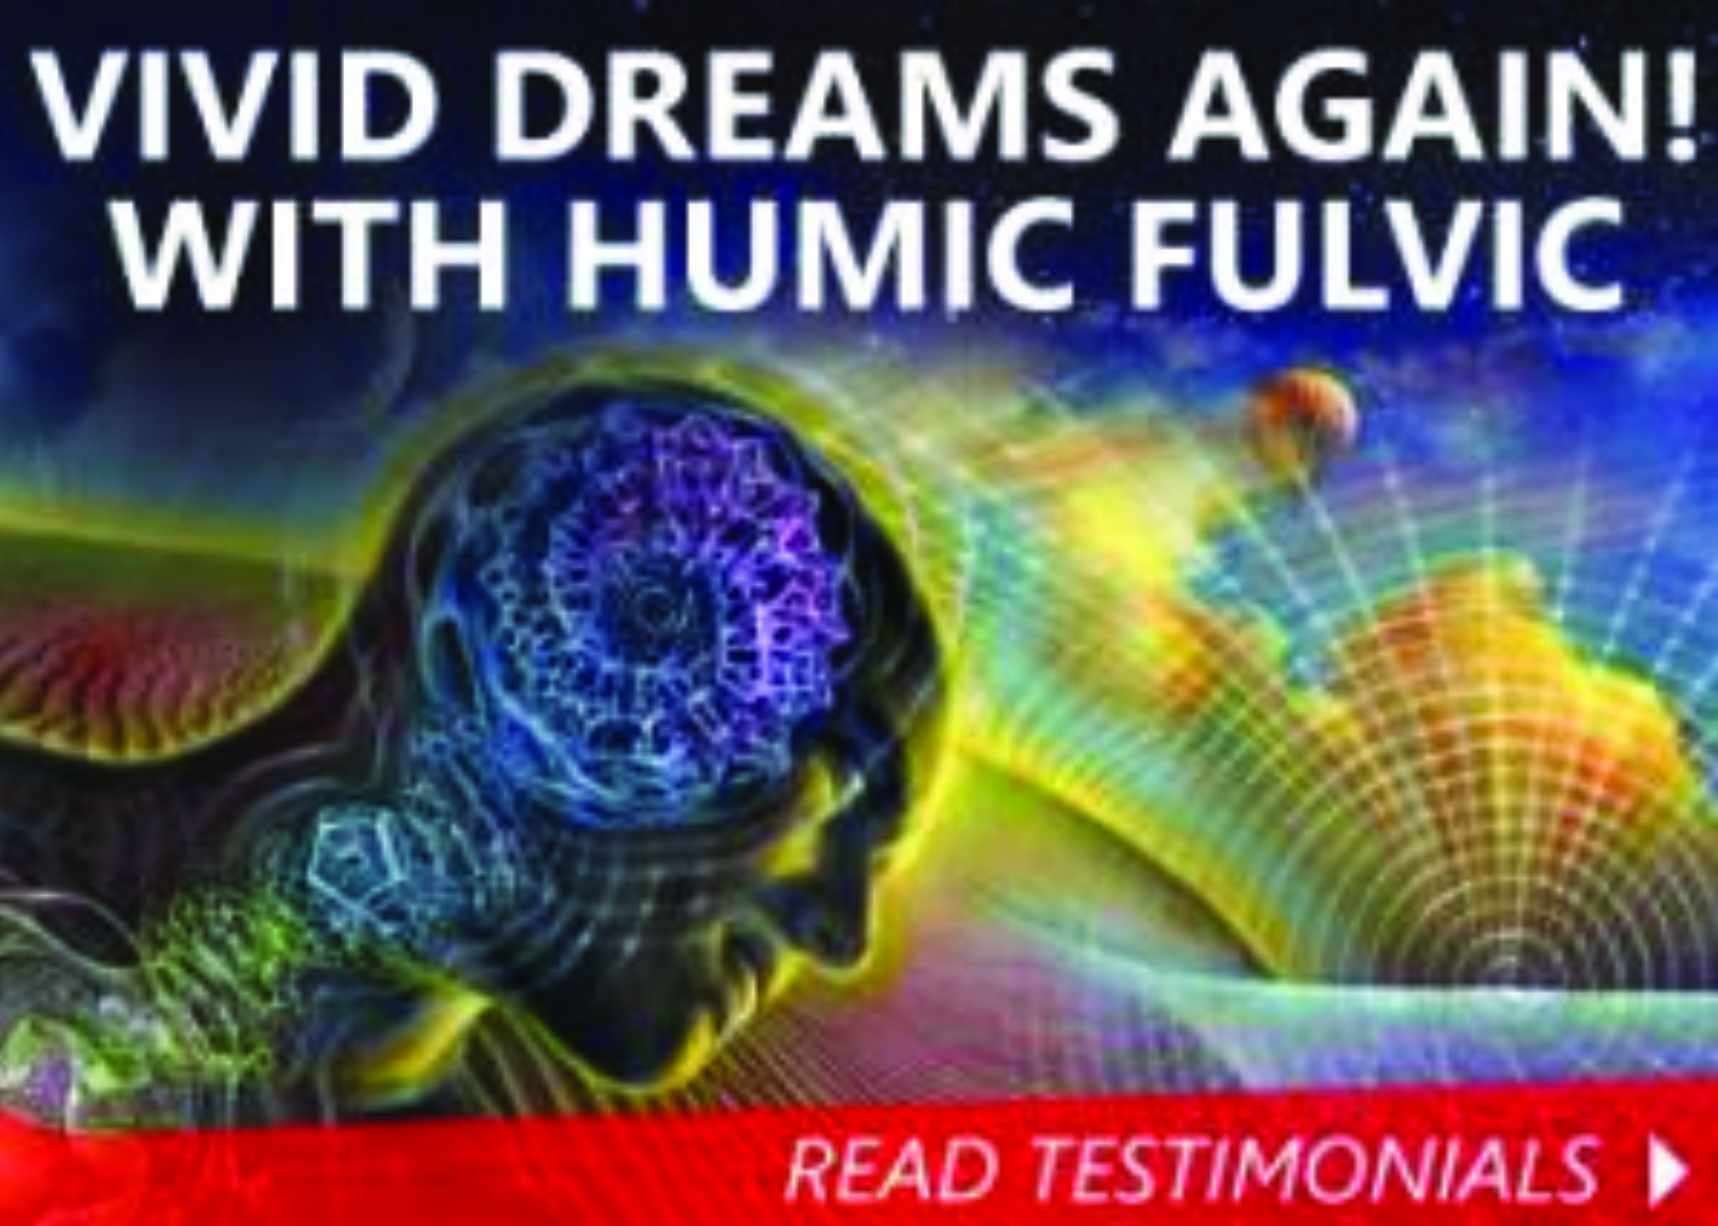 Dream Vividly Again With Humic Fulvic